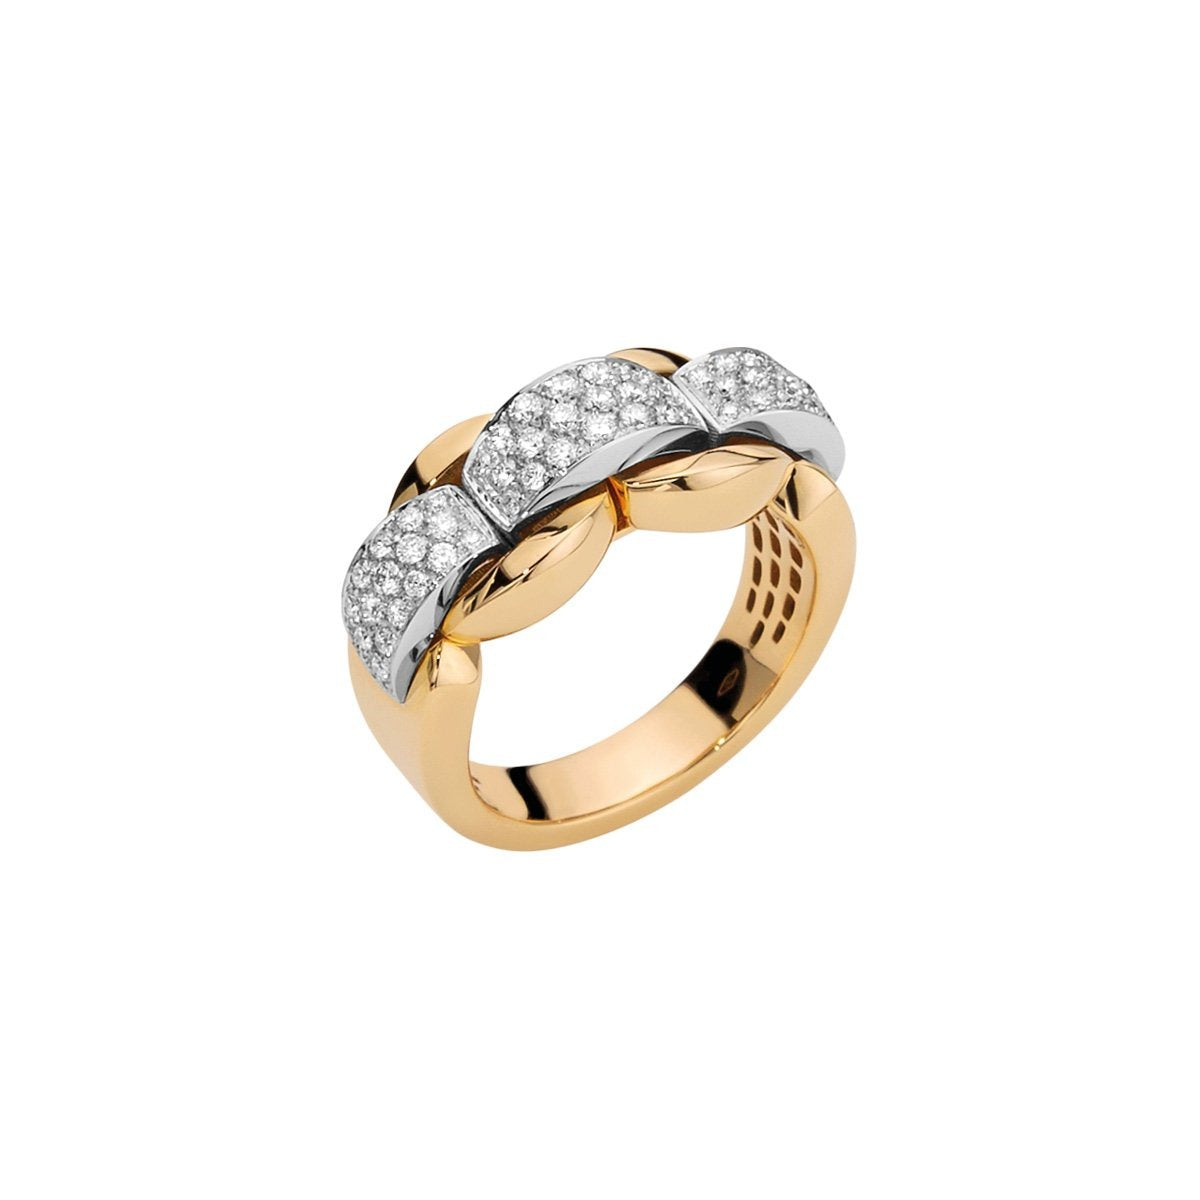 FOPE Novita Ring in 18ct Yellow Gold With Pave Diamond Strip-Hamilton & Inches